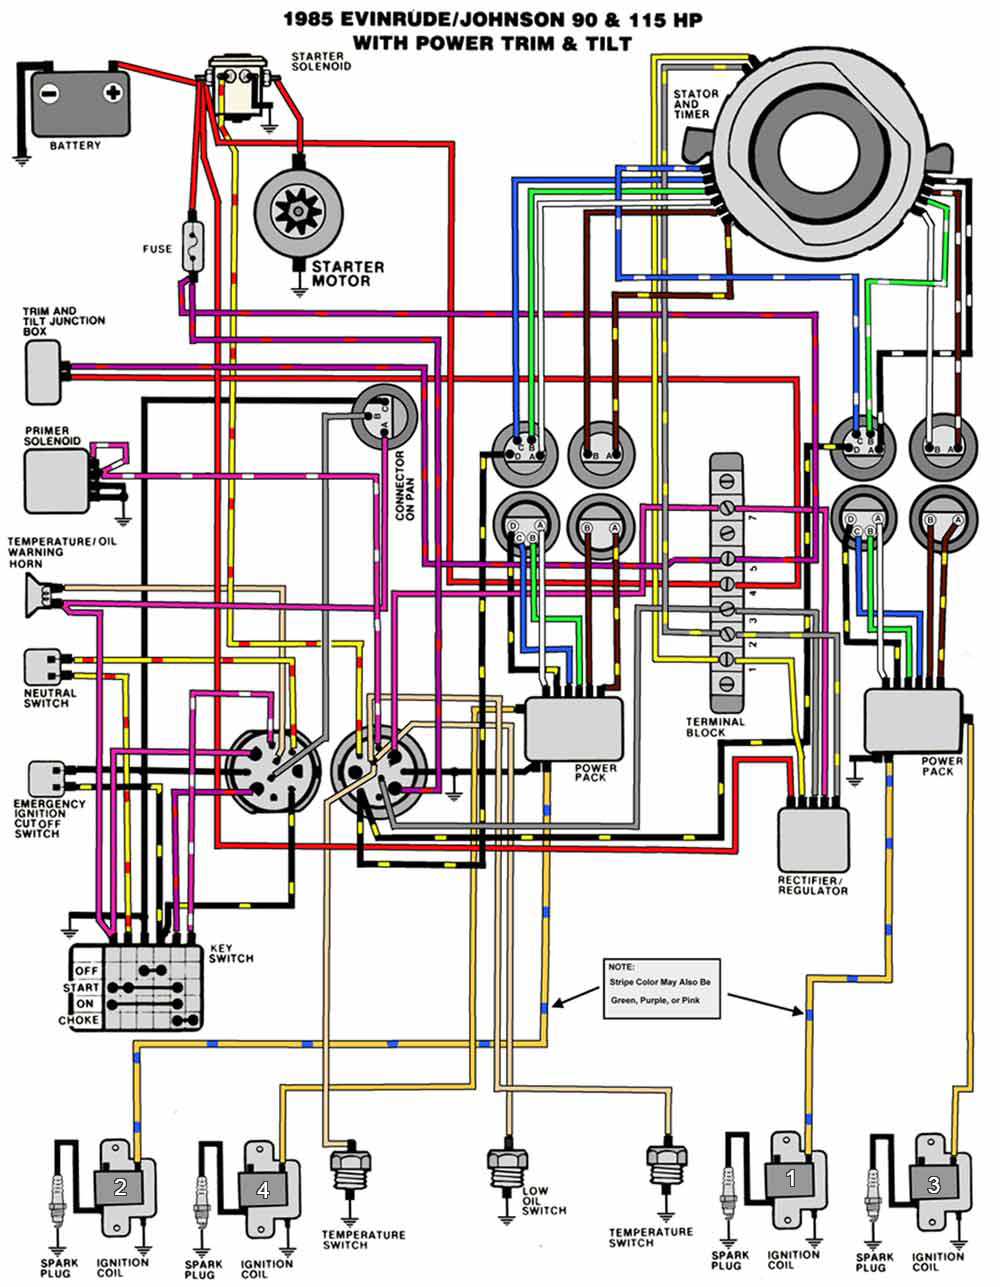 wiring schematics for evinrude 115 hp wiring diagrams hubsevinrude johnson outboard wiring diagrams mastertech marine 50 hp evinrude wiring diagram wiring schematics for evinrude 115 hp